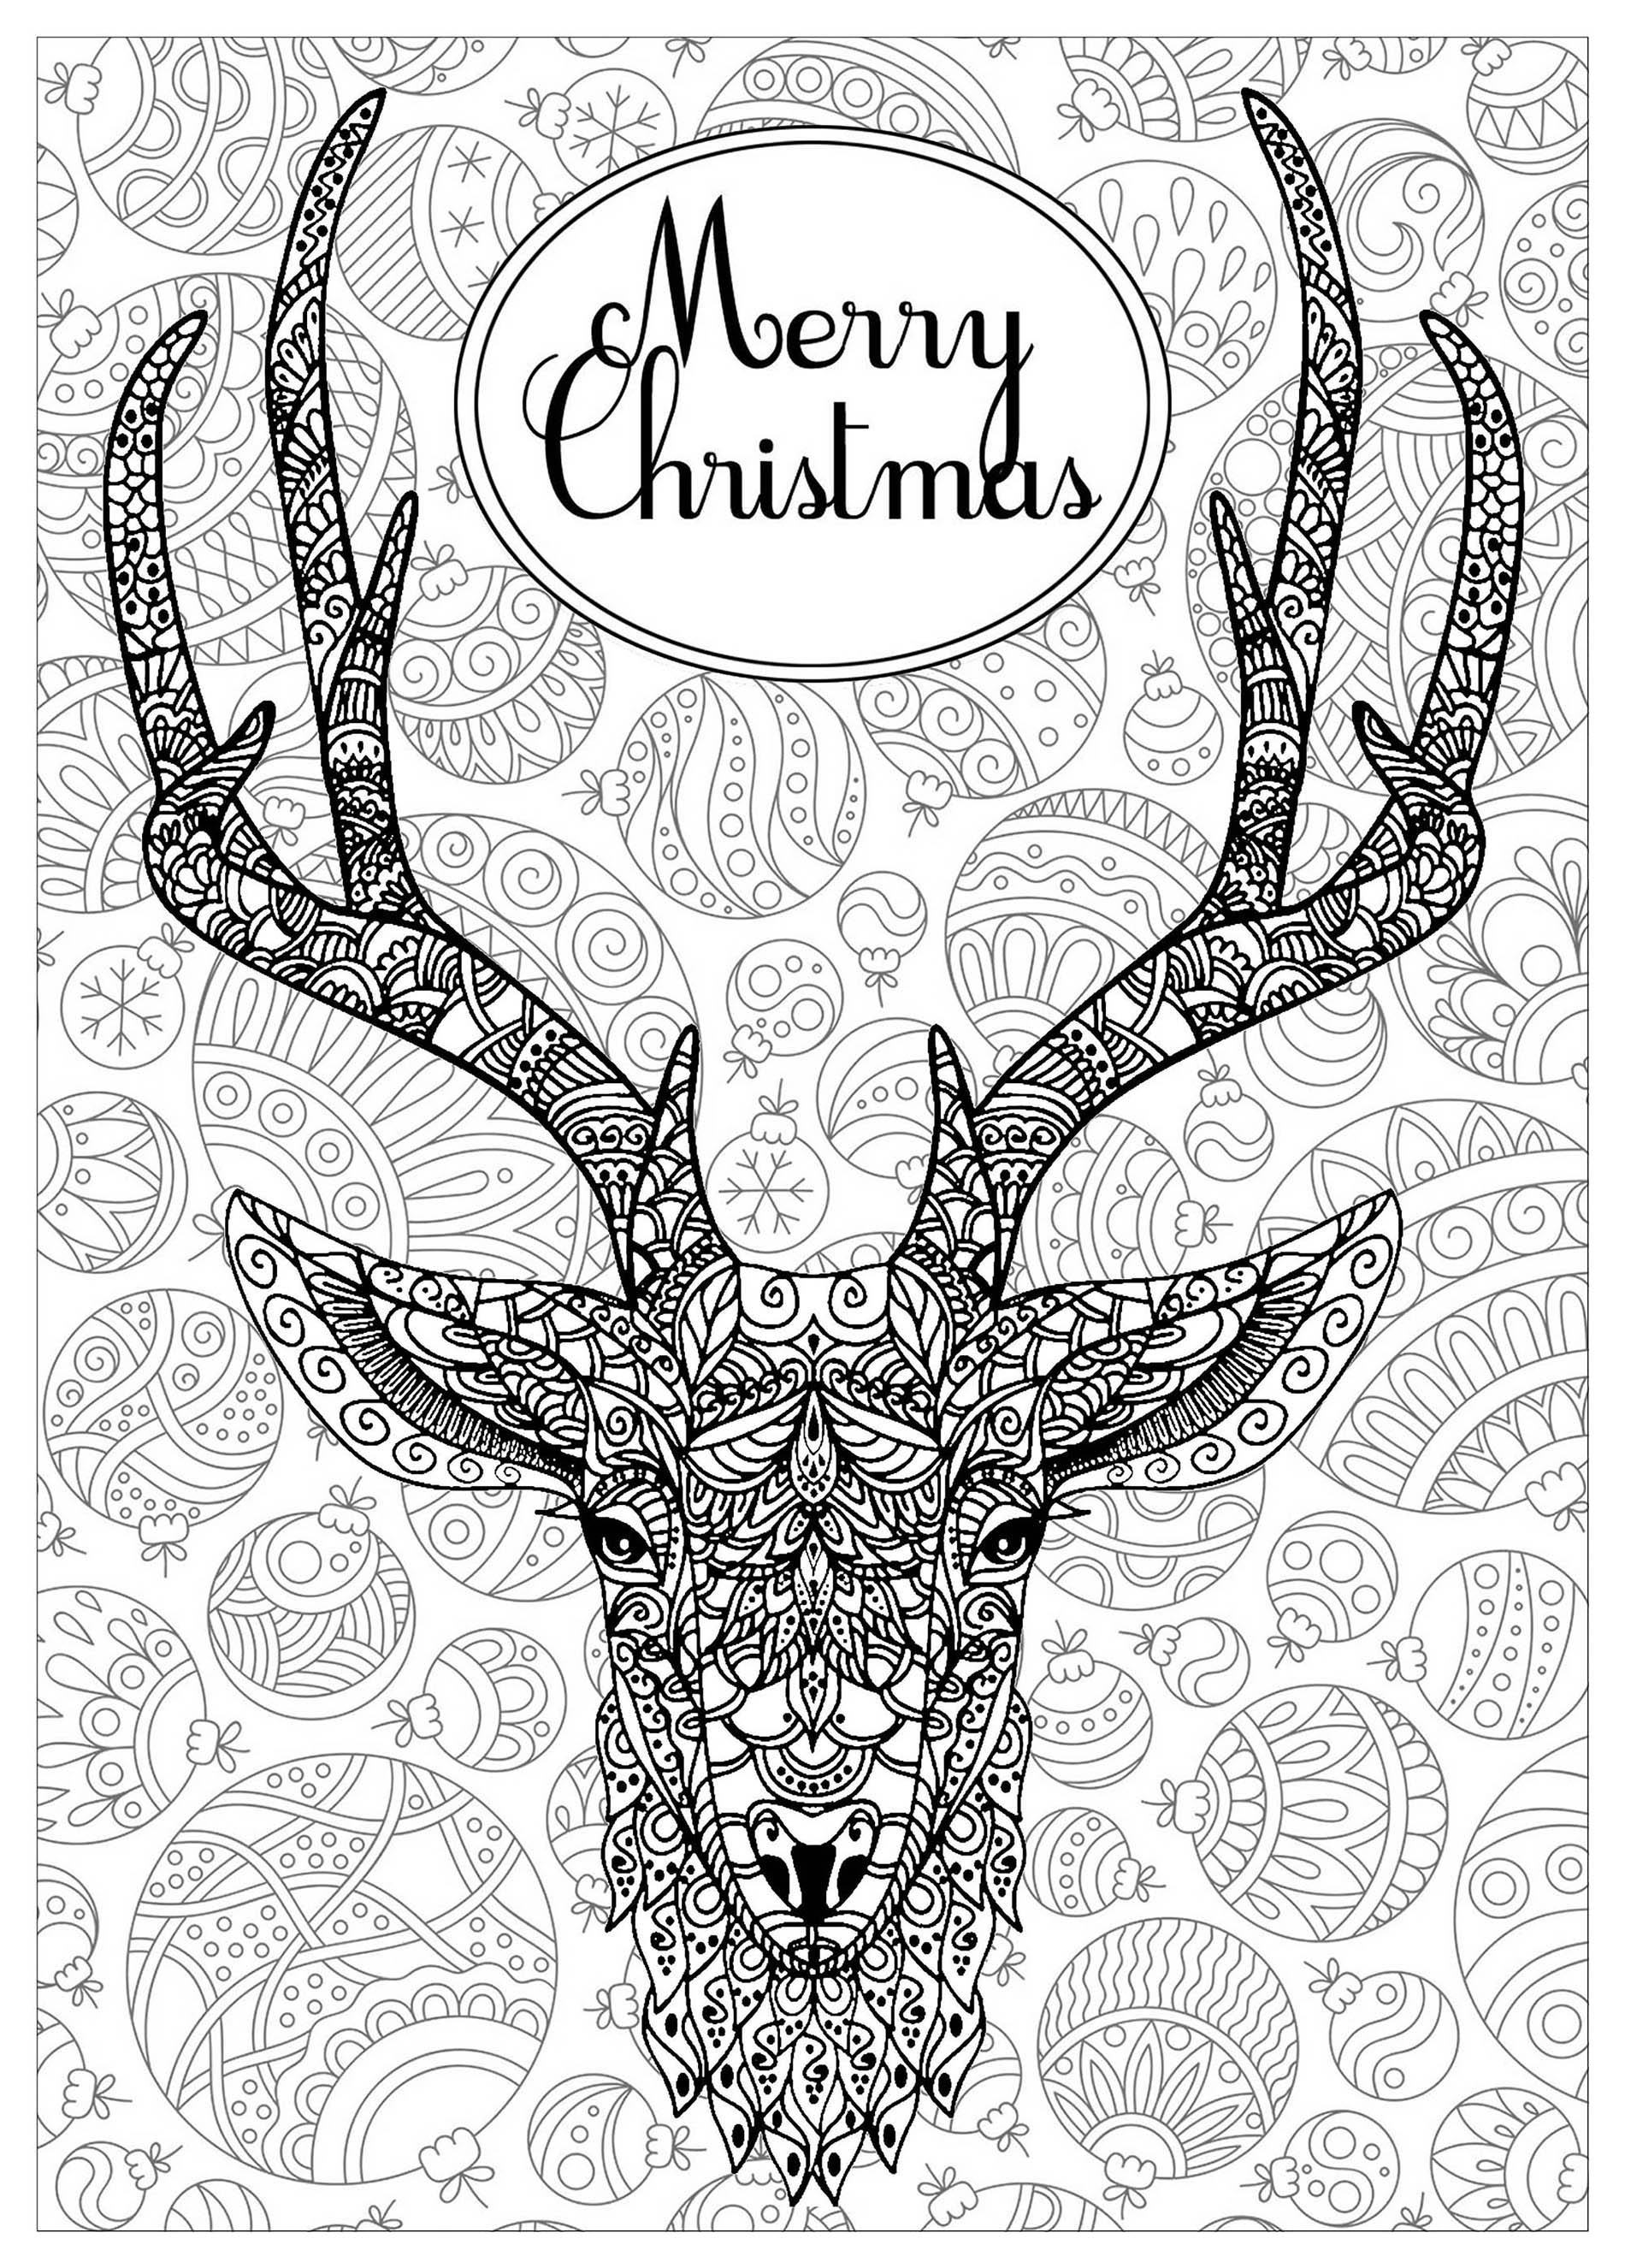 Deer with text and background Christmas Coloring pages for adults